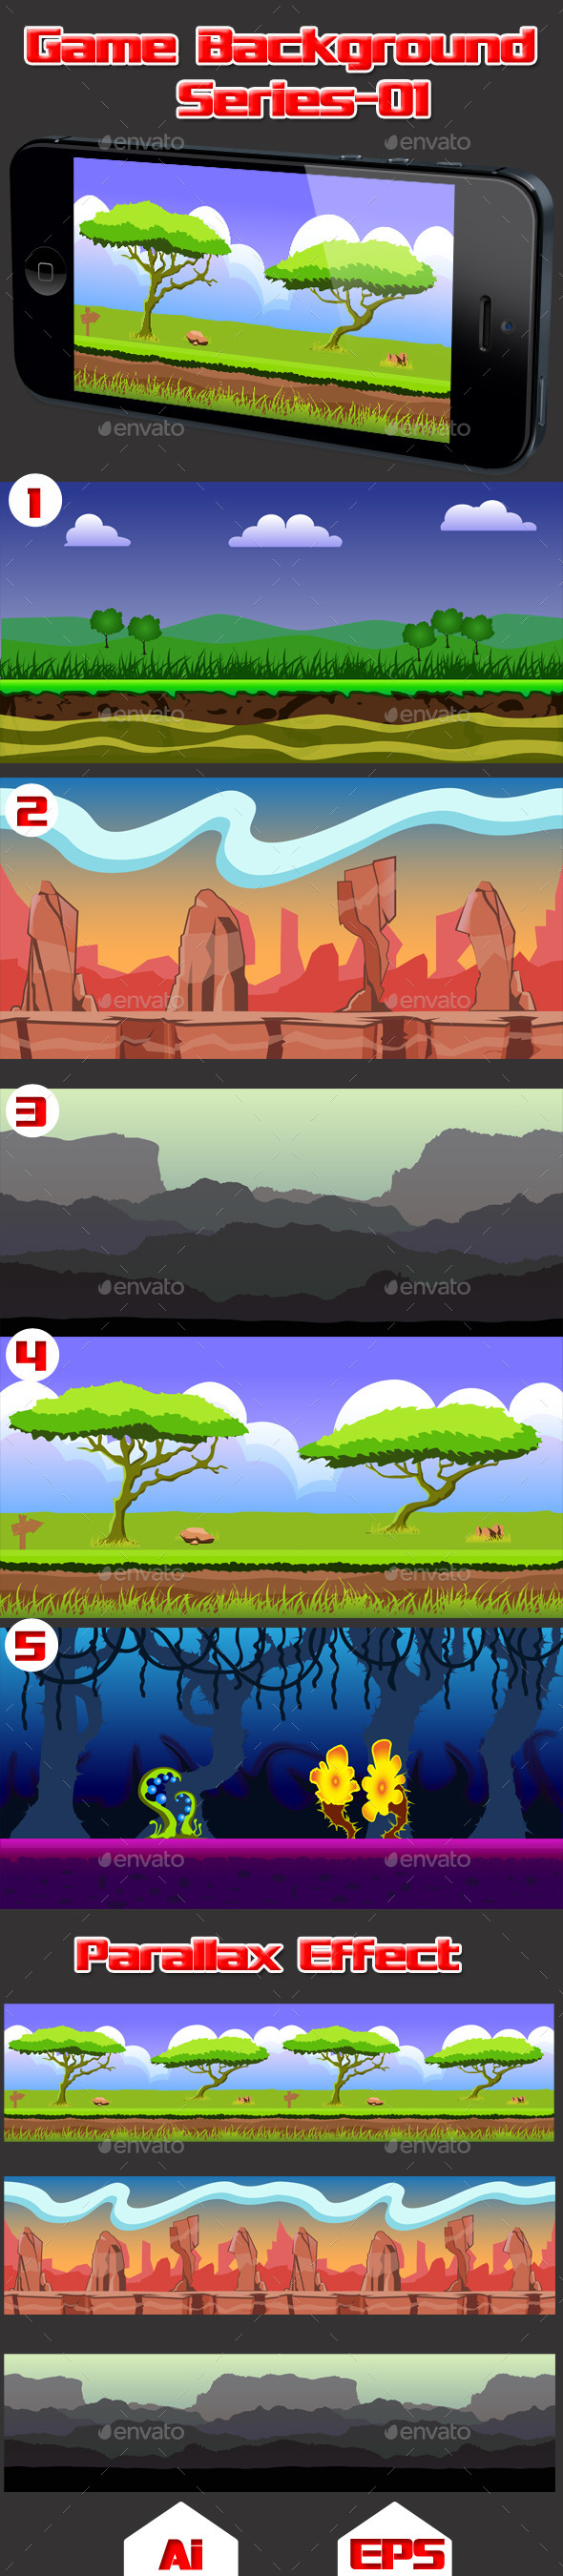 GraphicRiver Game Background Series-01 11779334